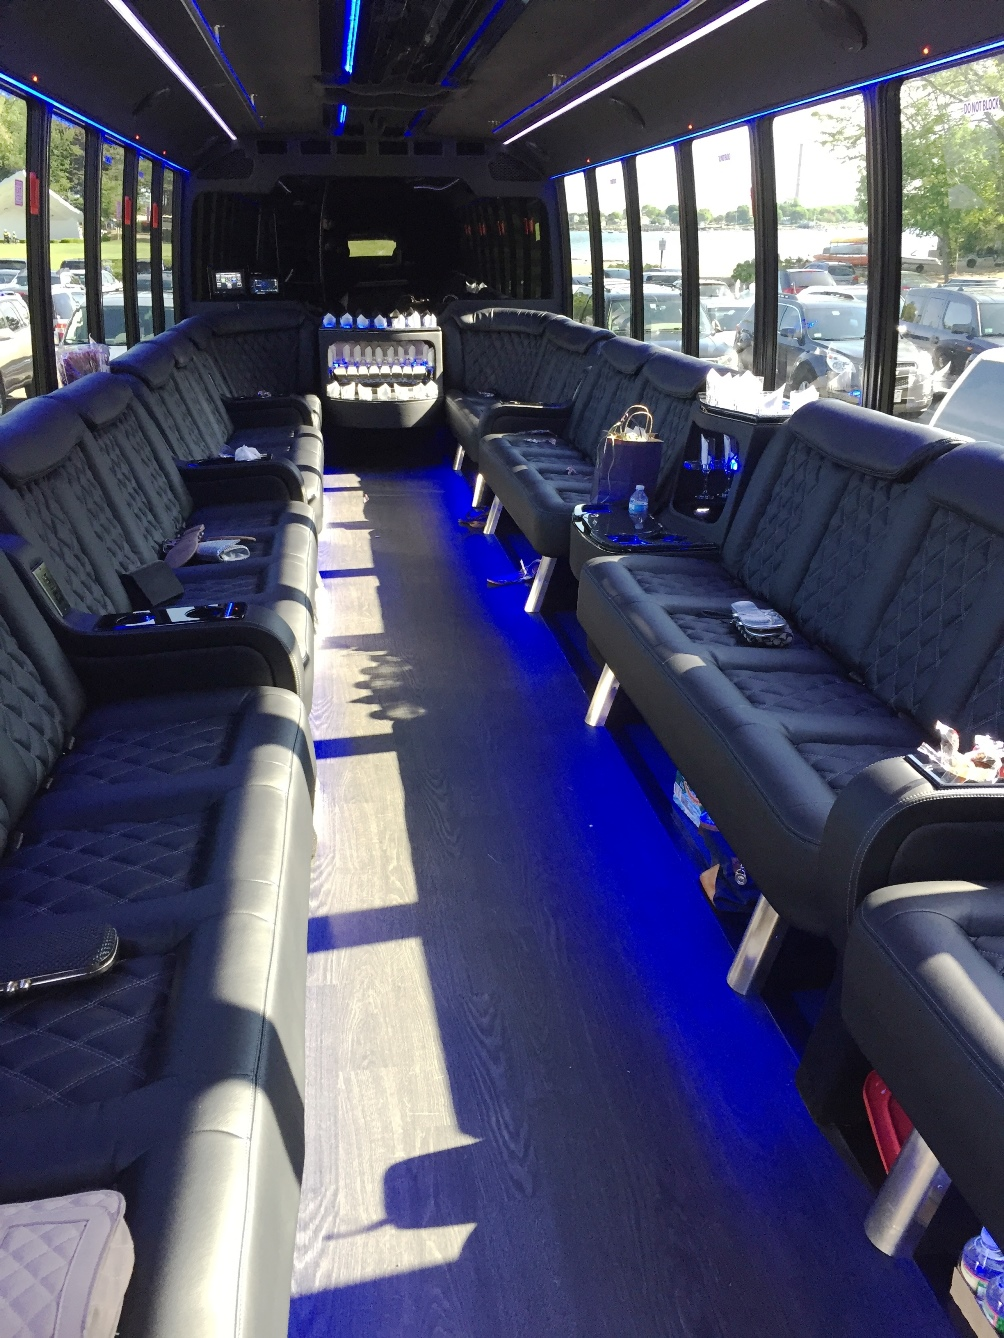 New Mega Party Bus With Bathroom Boston MA - Do charter buses have bathrooms